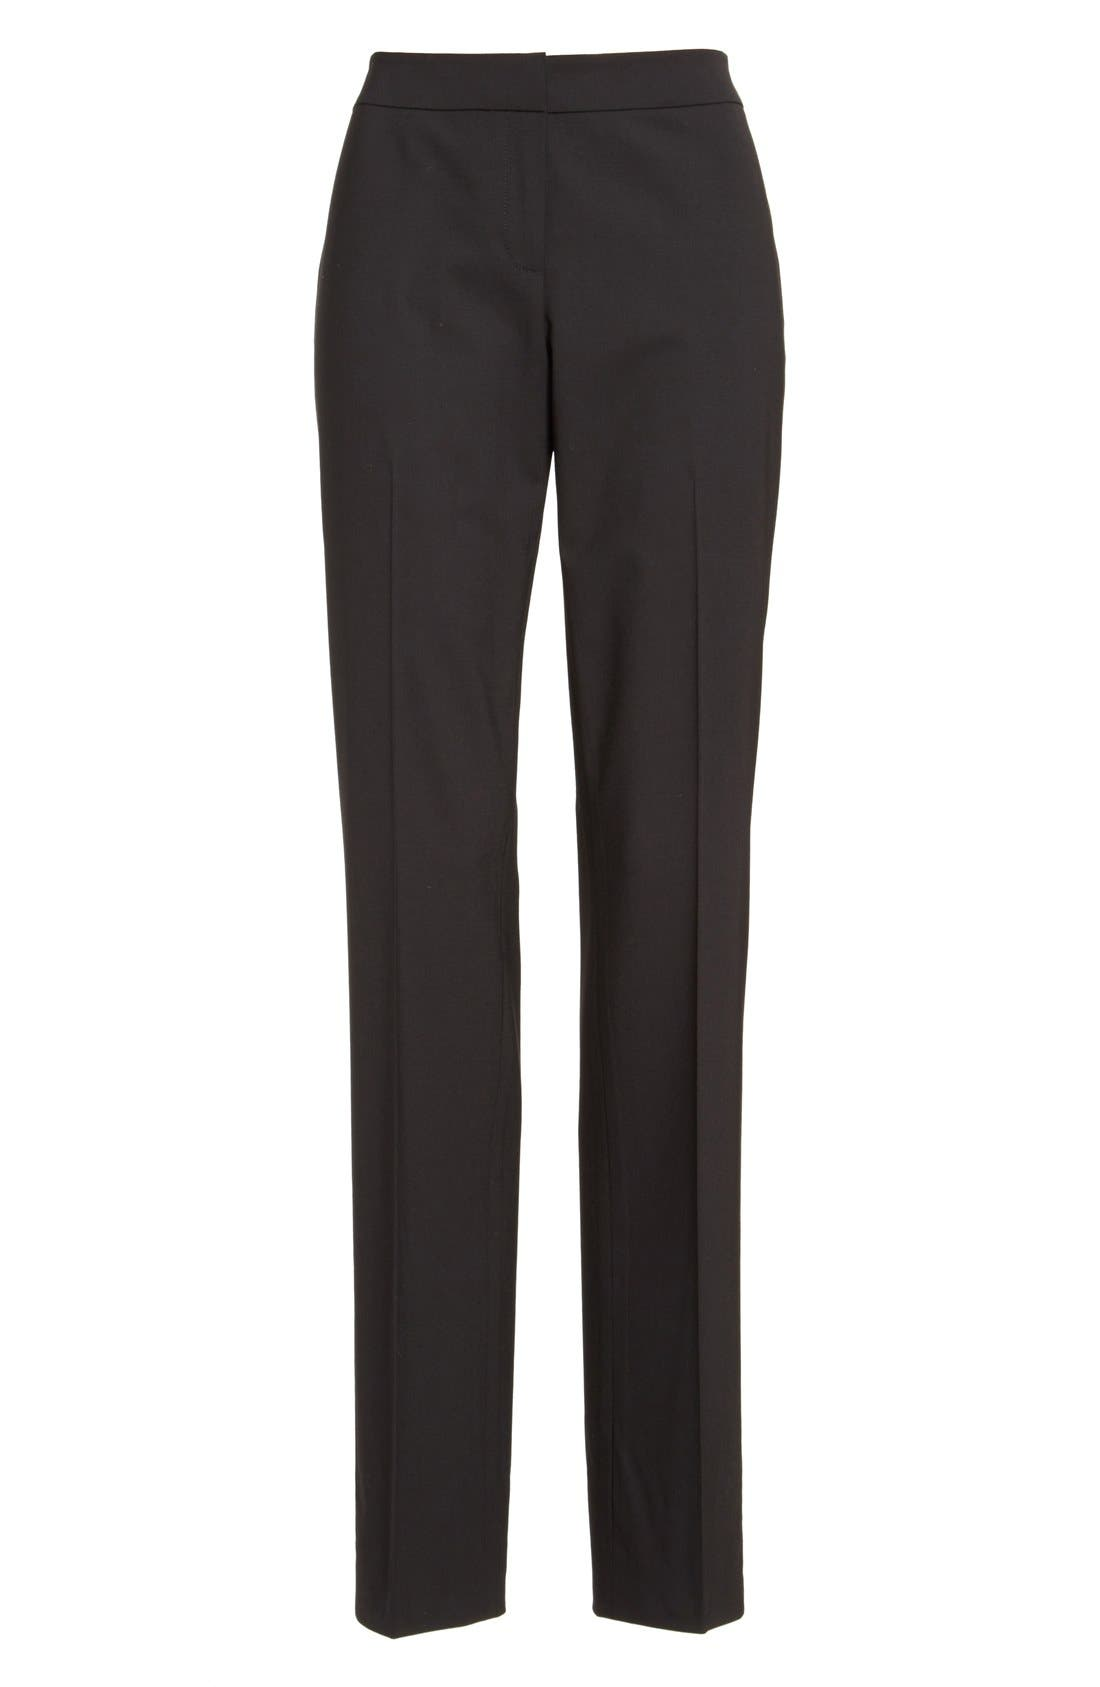 Alternate Image 4  - Lafayette 148 New York 'Barrow' Stretch Wool Pants